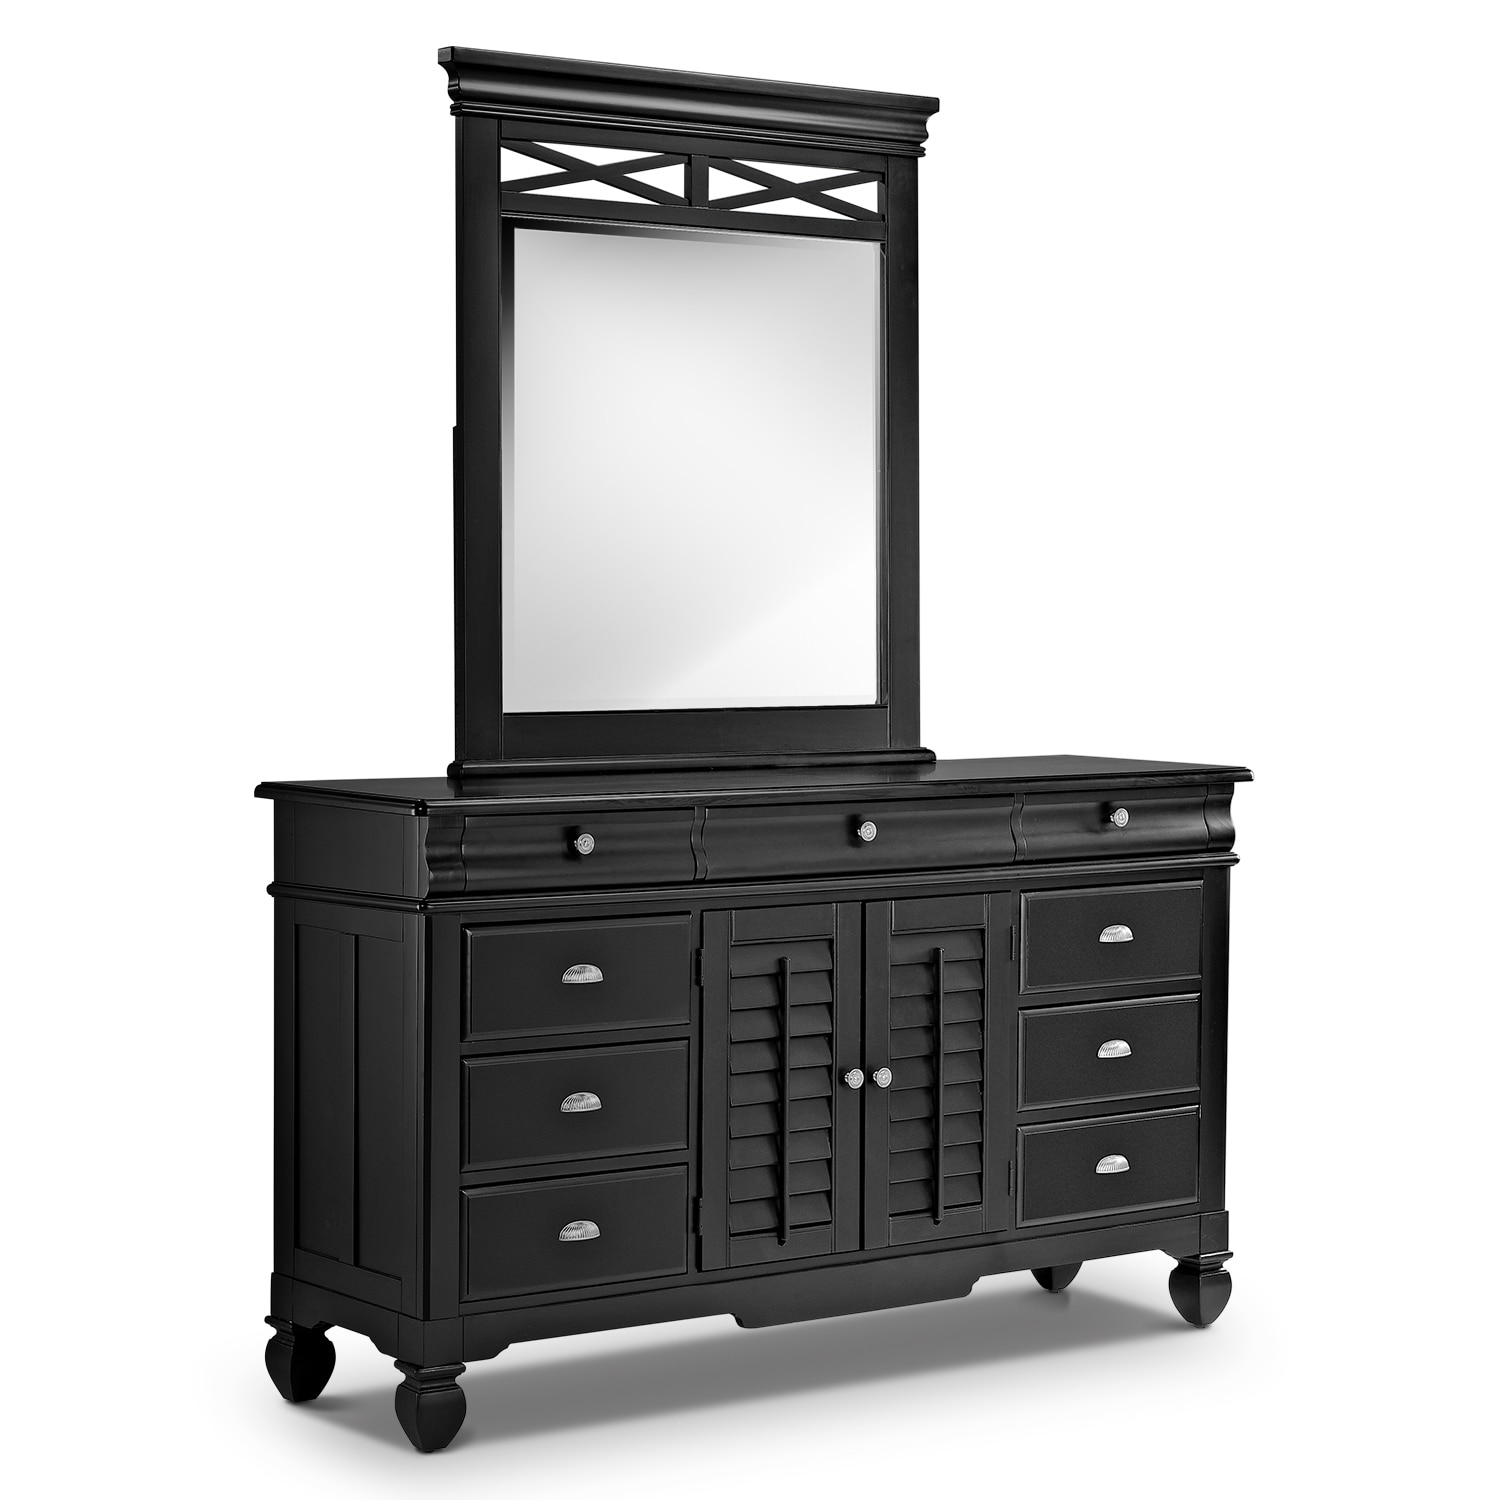 Plantation Cove Black Canopy Bedroom 5 Pc. Queen Bedroom